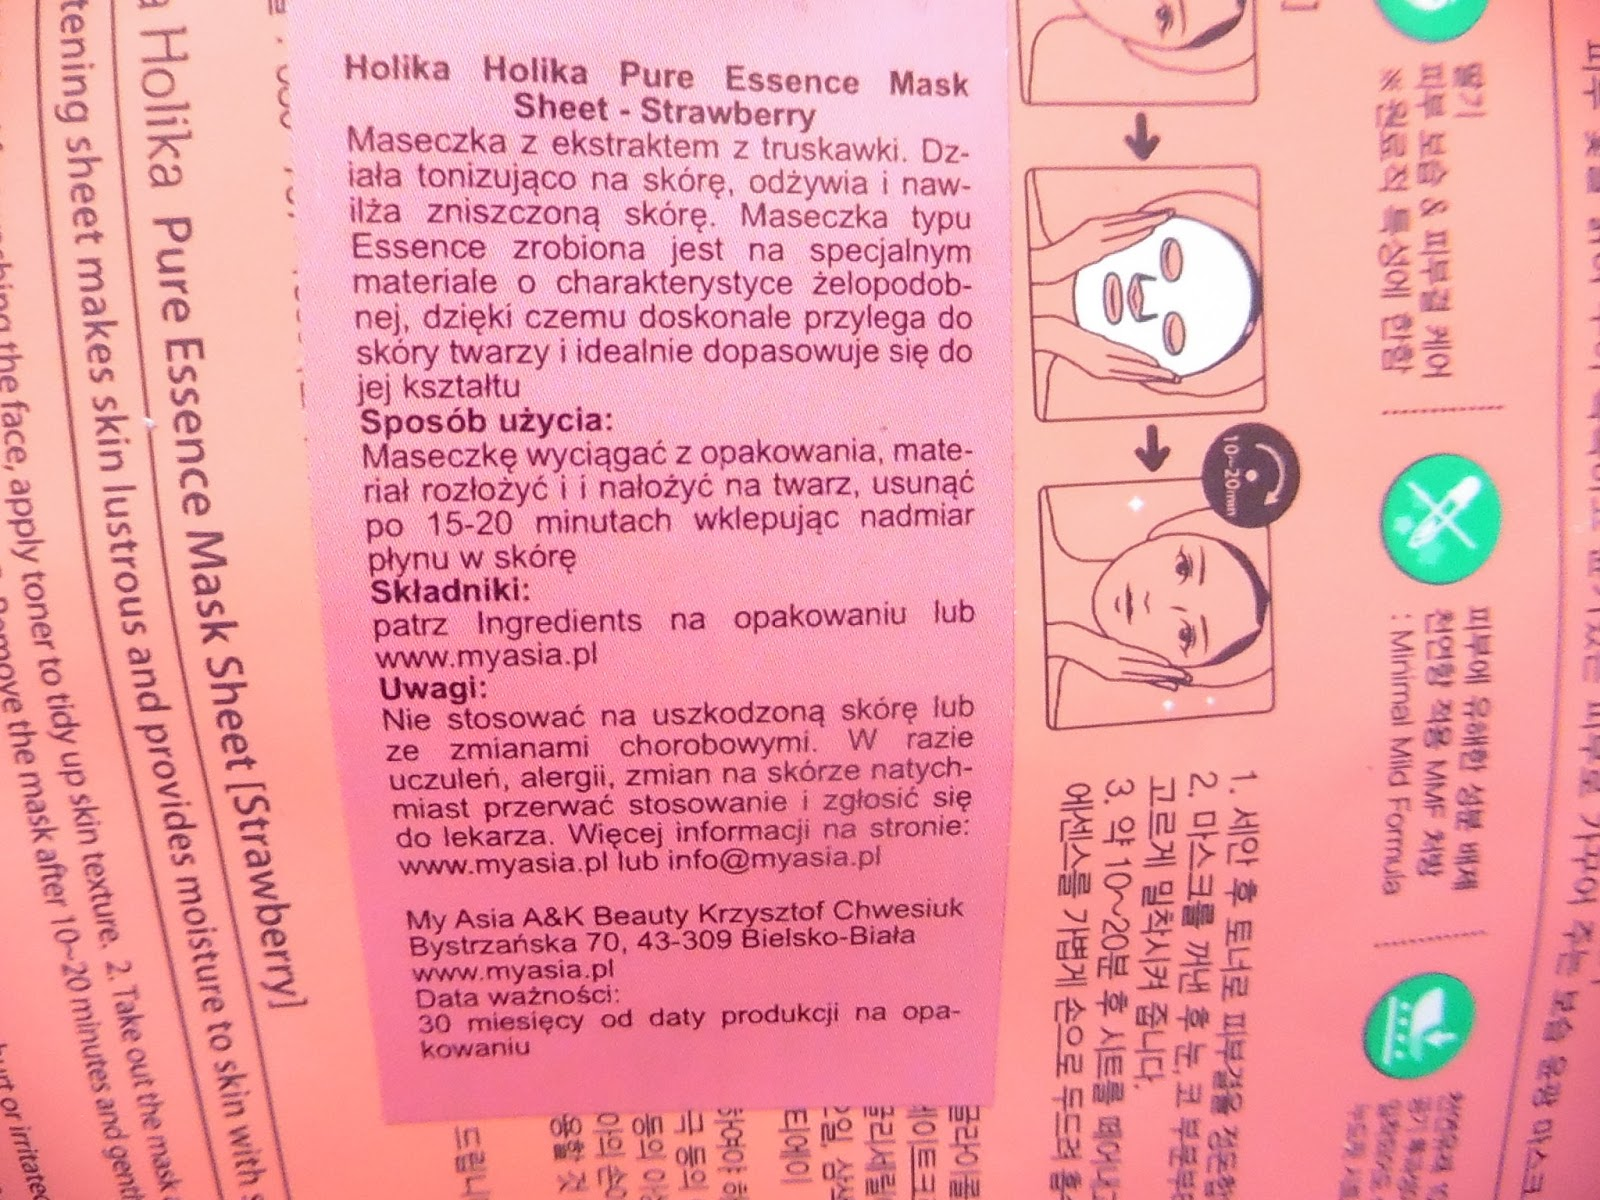 Pure-Essence-Mask-Sheet, holika-holika-maska-w-plachcie